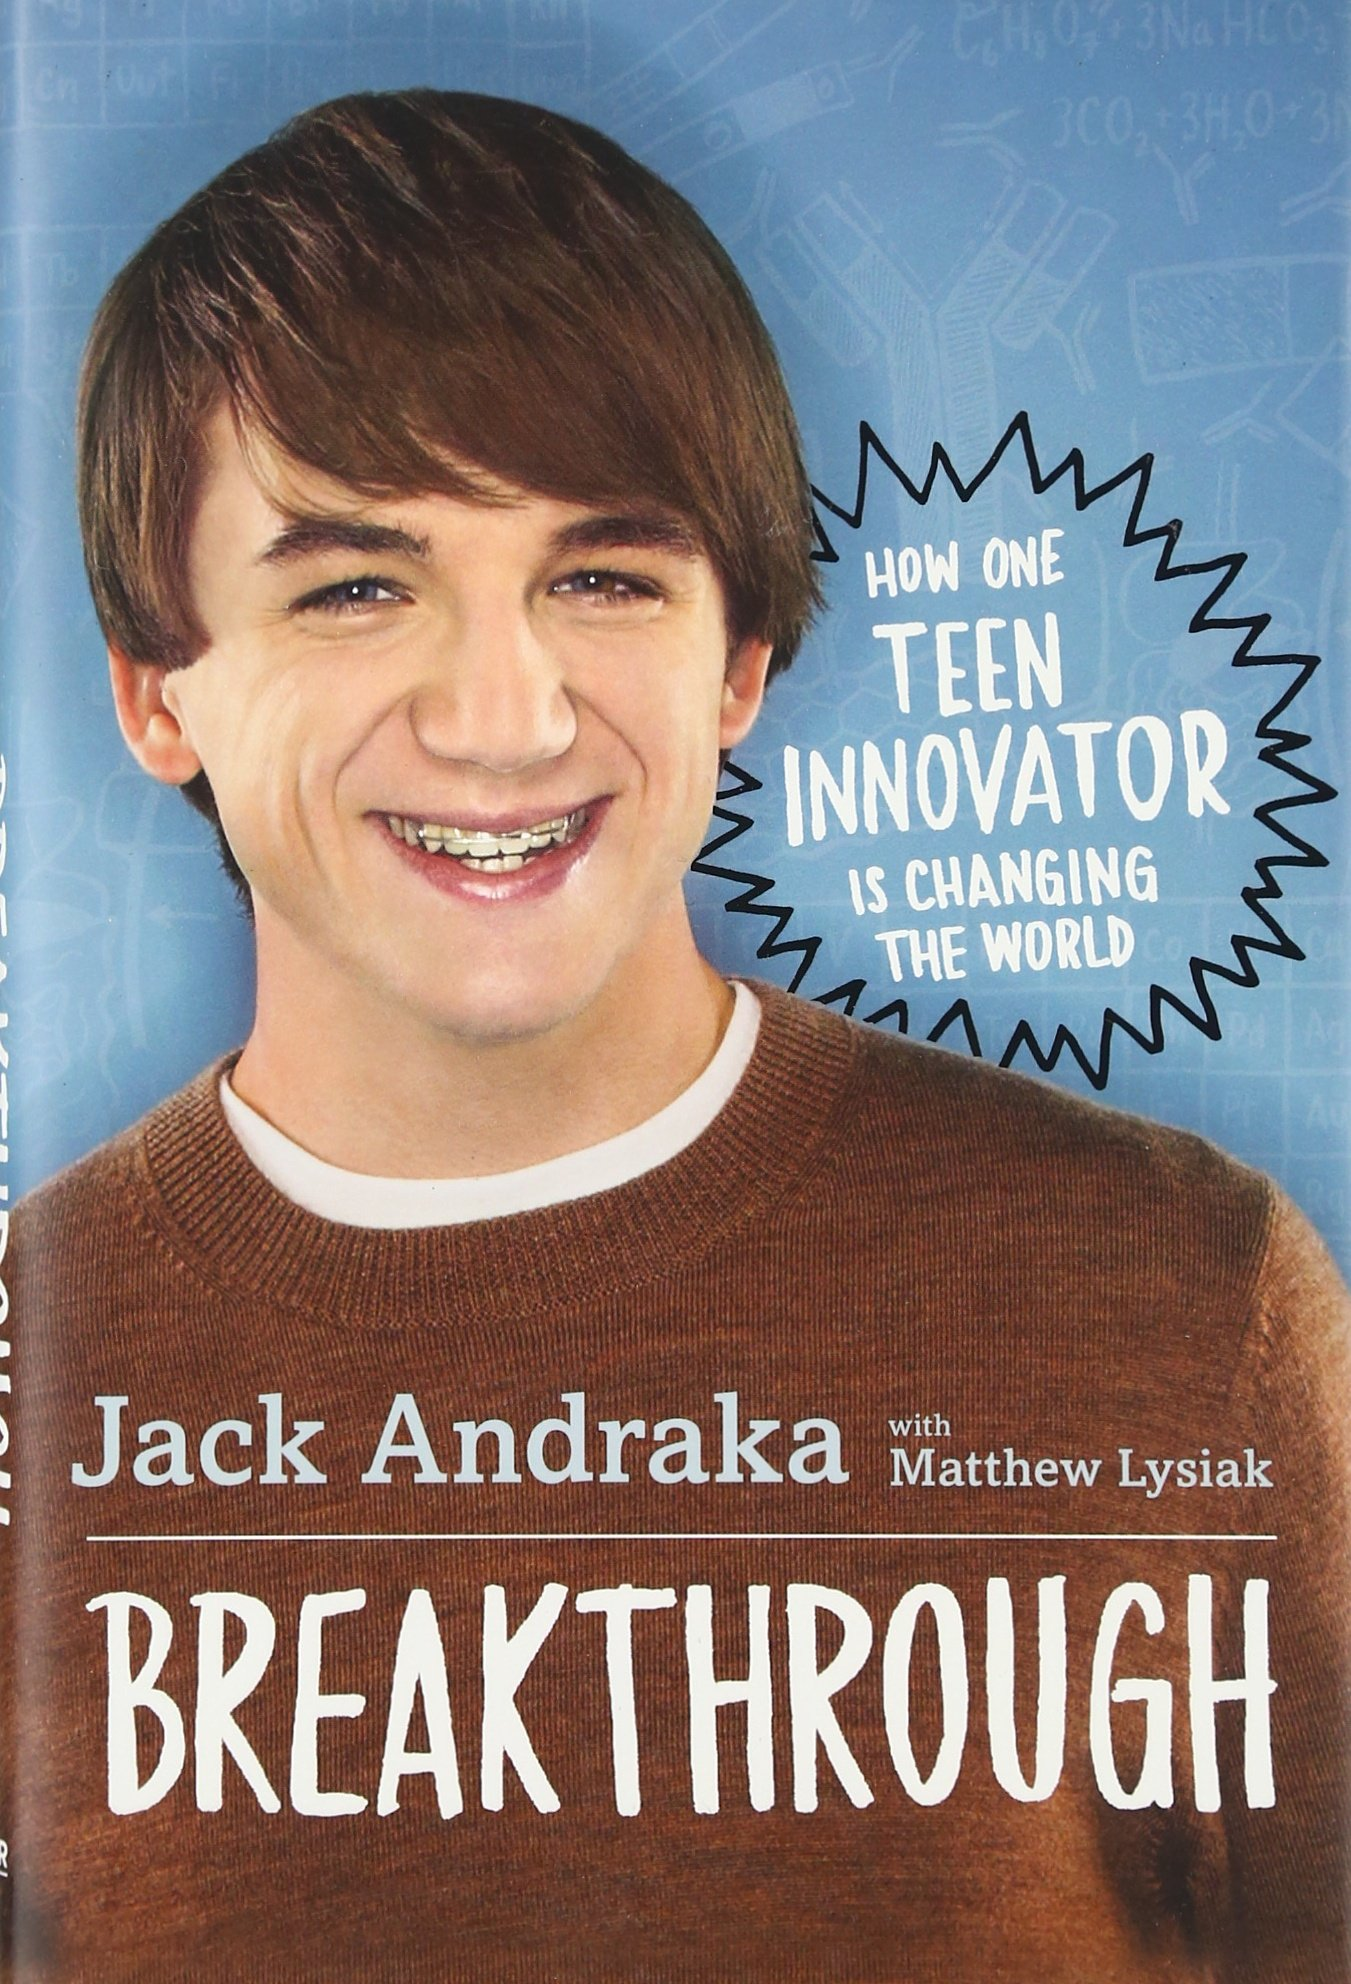 Breakthrough Teen Innovator Changing World product image